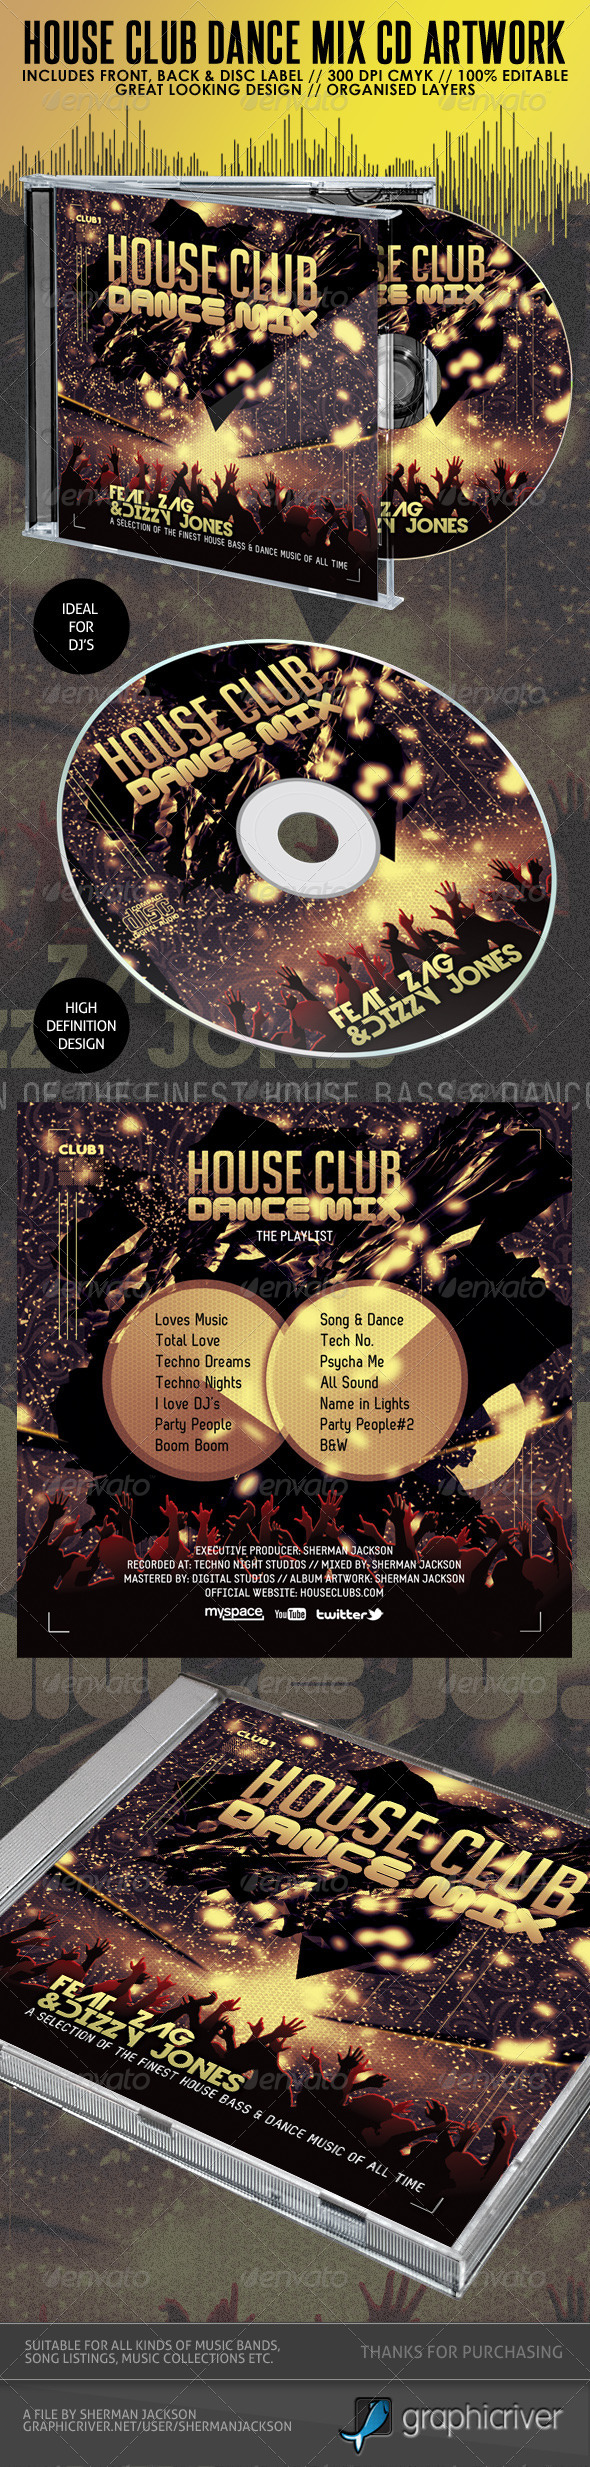 GraphicRiver House Club & Dance Mix CD Album Artwork 4292713